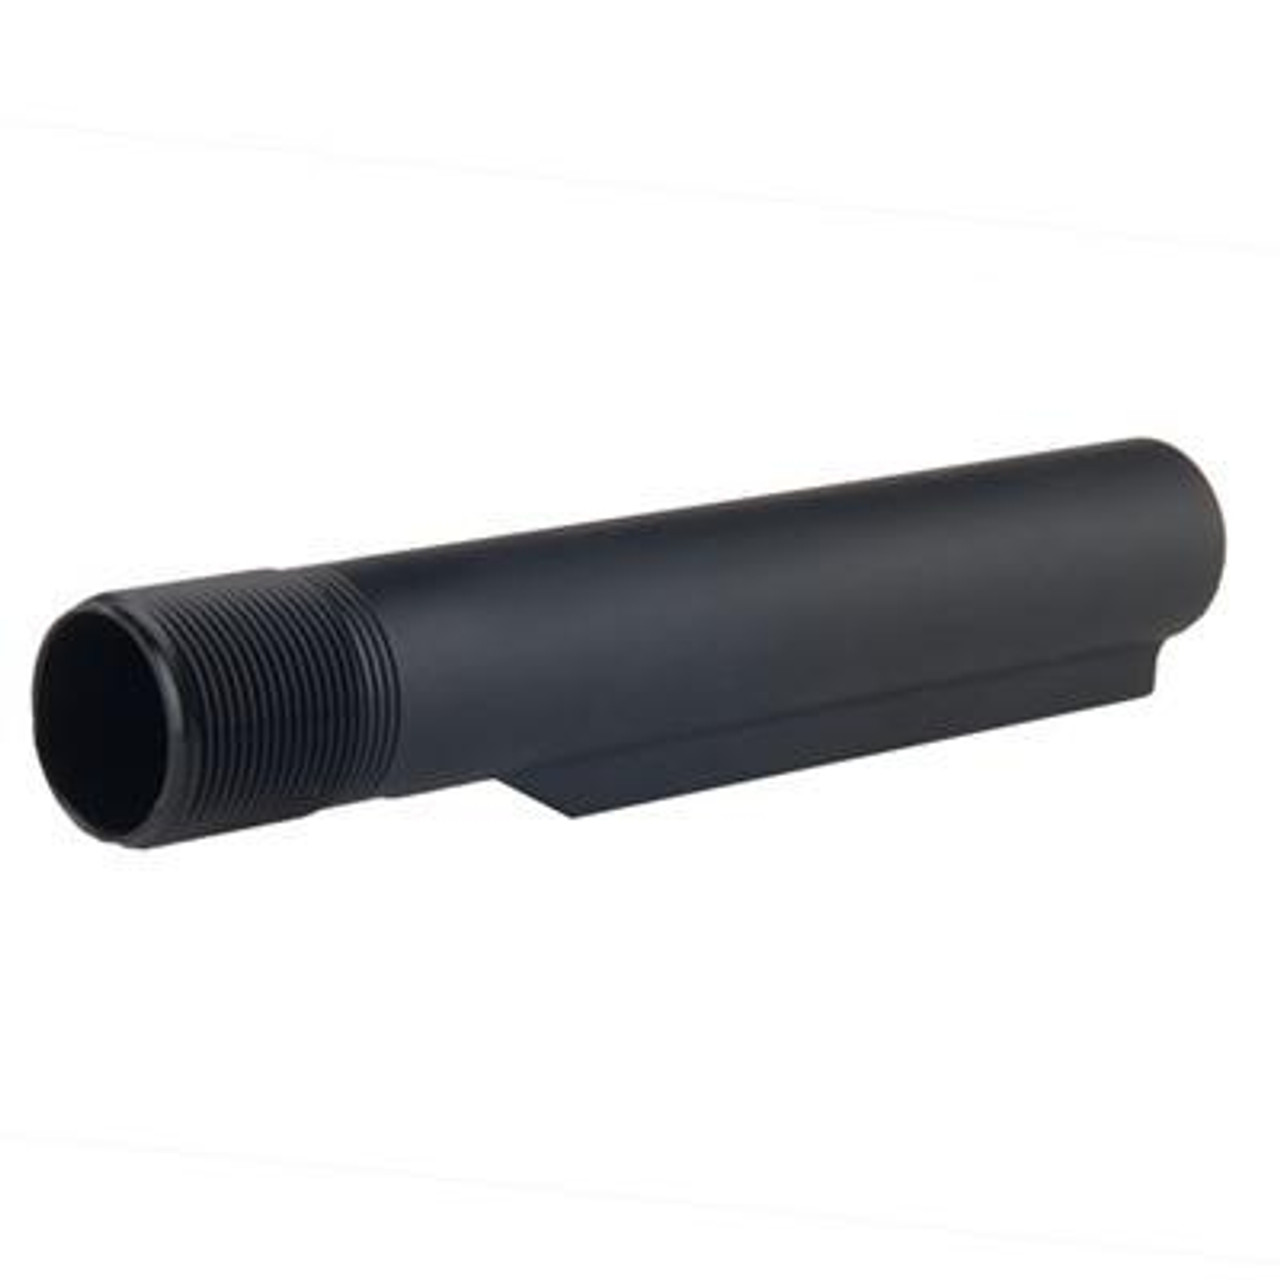 6-Position Mil-Spec Buffer Tube